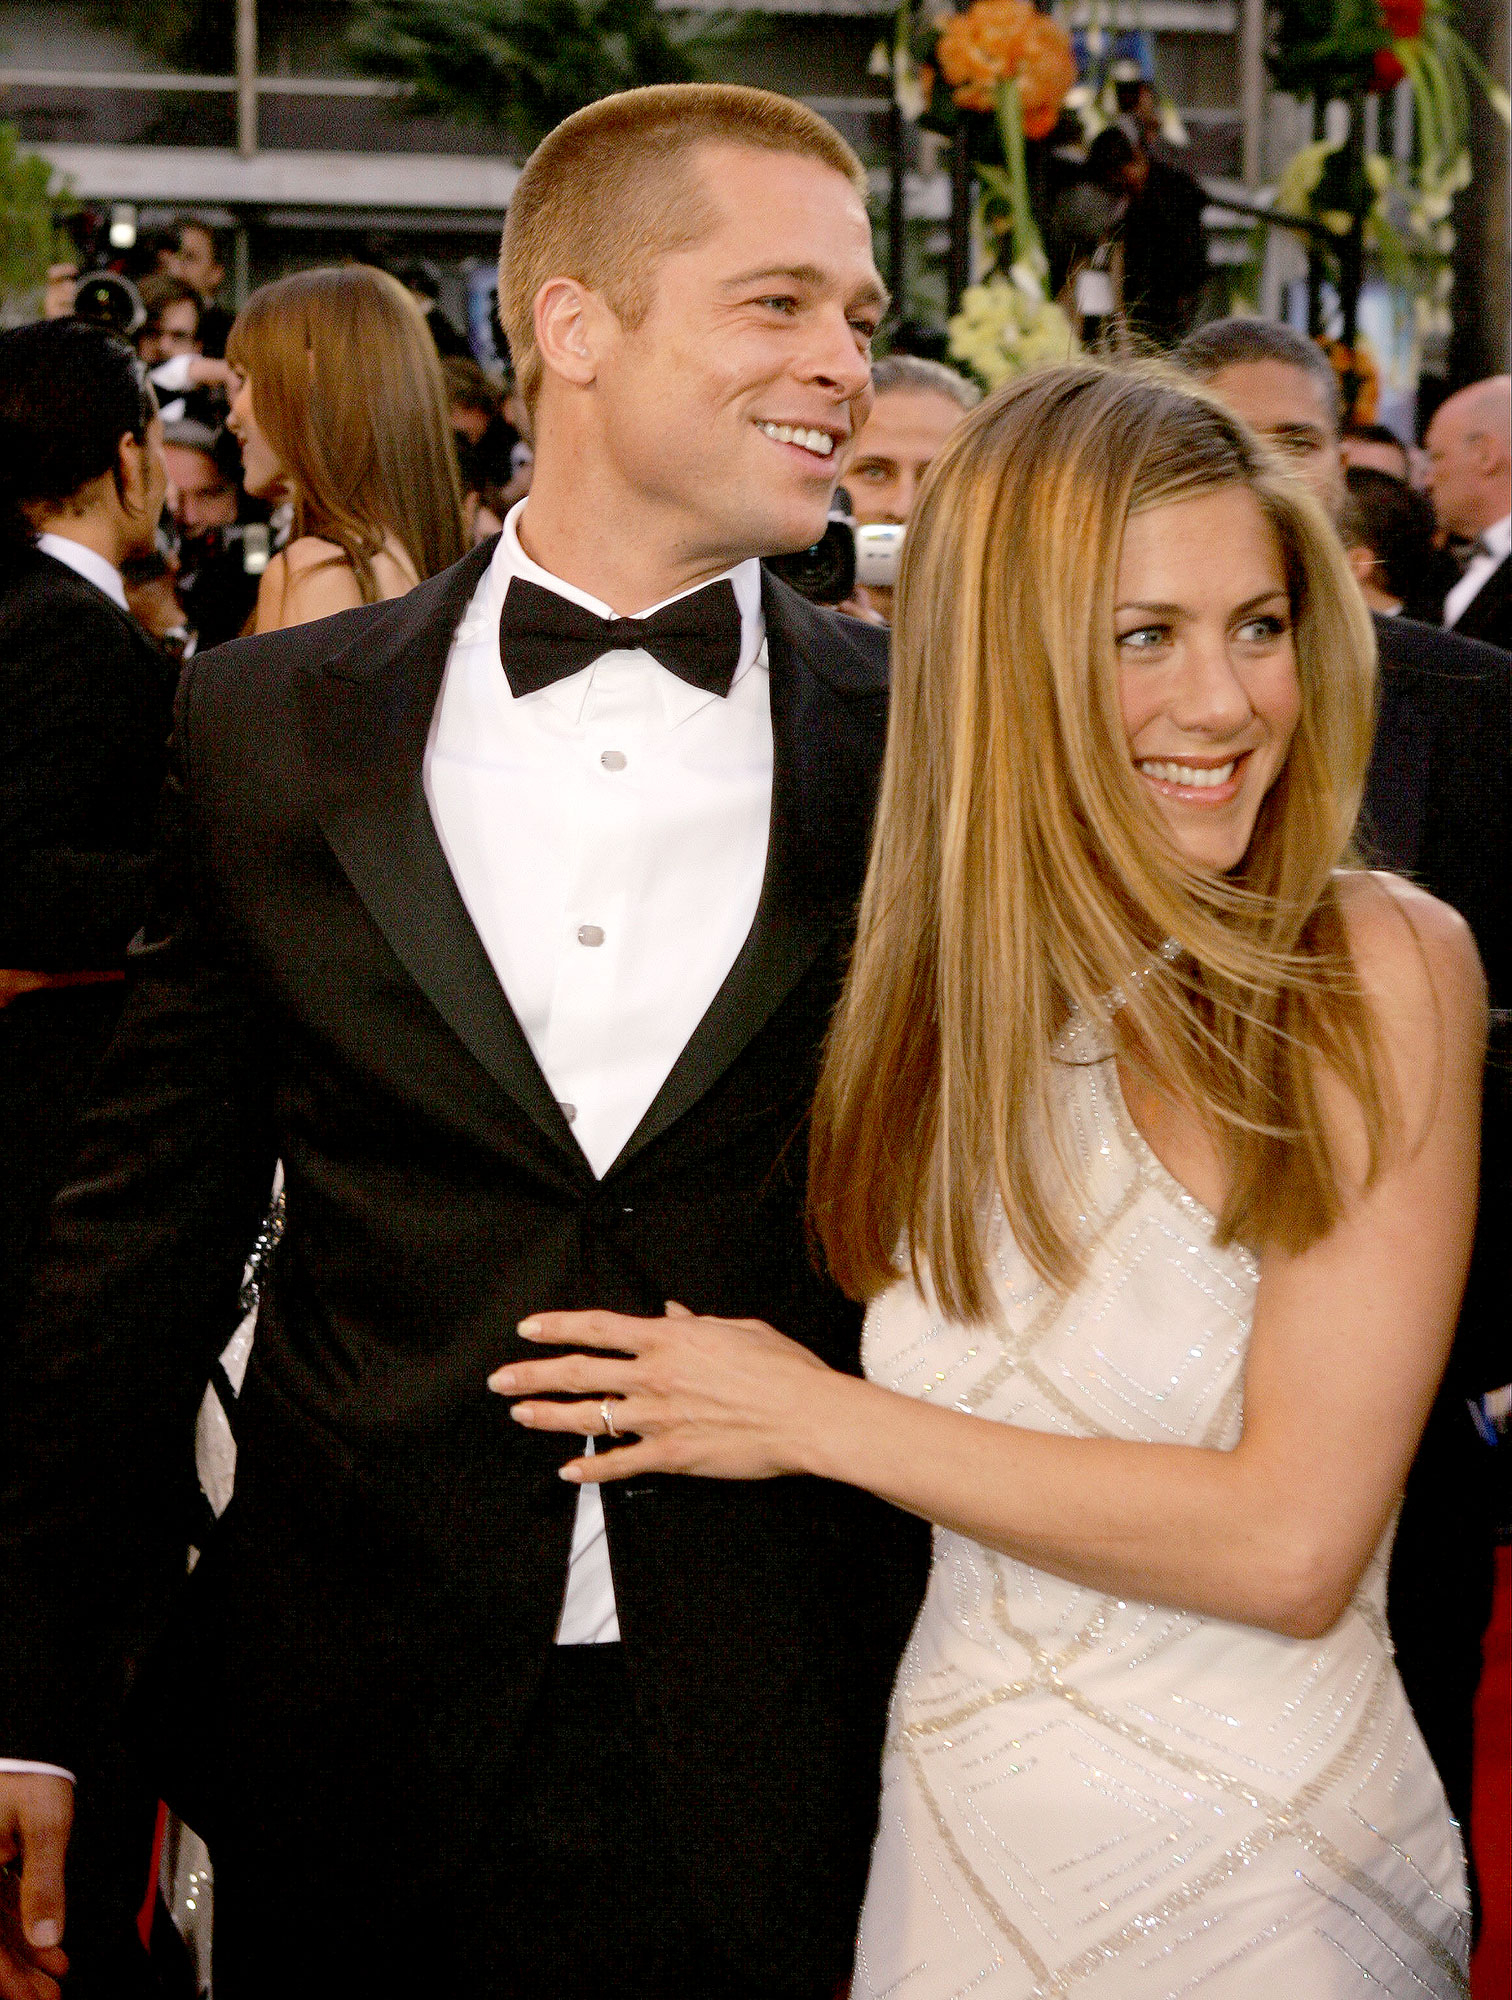 Brad Pitt And Jennifer Aniston Attend The Premiere Of Troy At 57th Cannes Film Festival Stephane Cardinale Corbis Via Getty Images